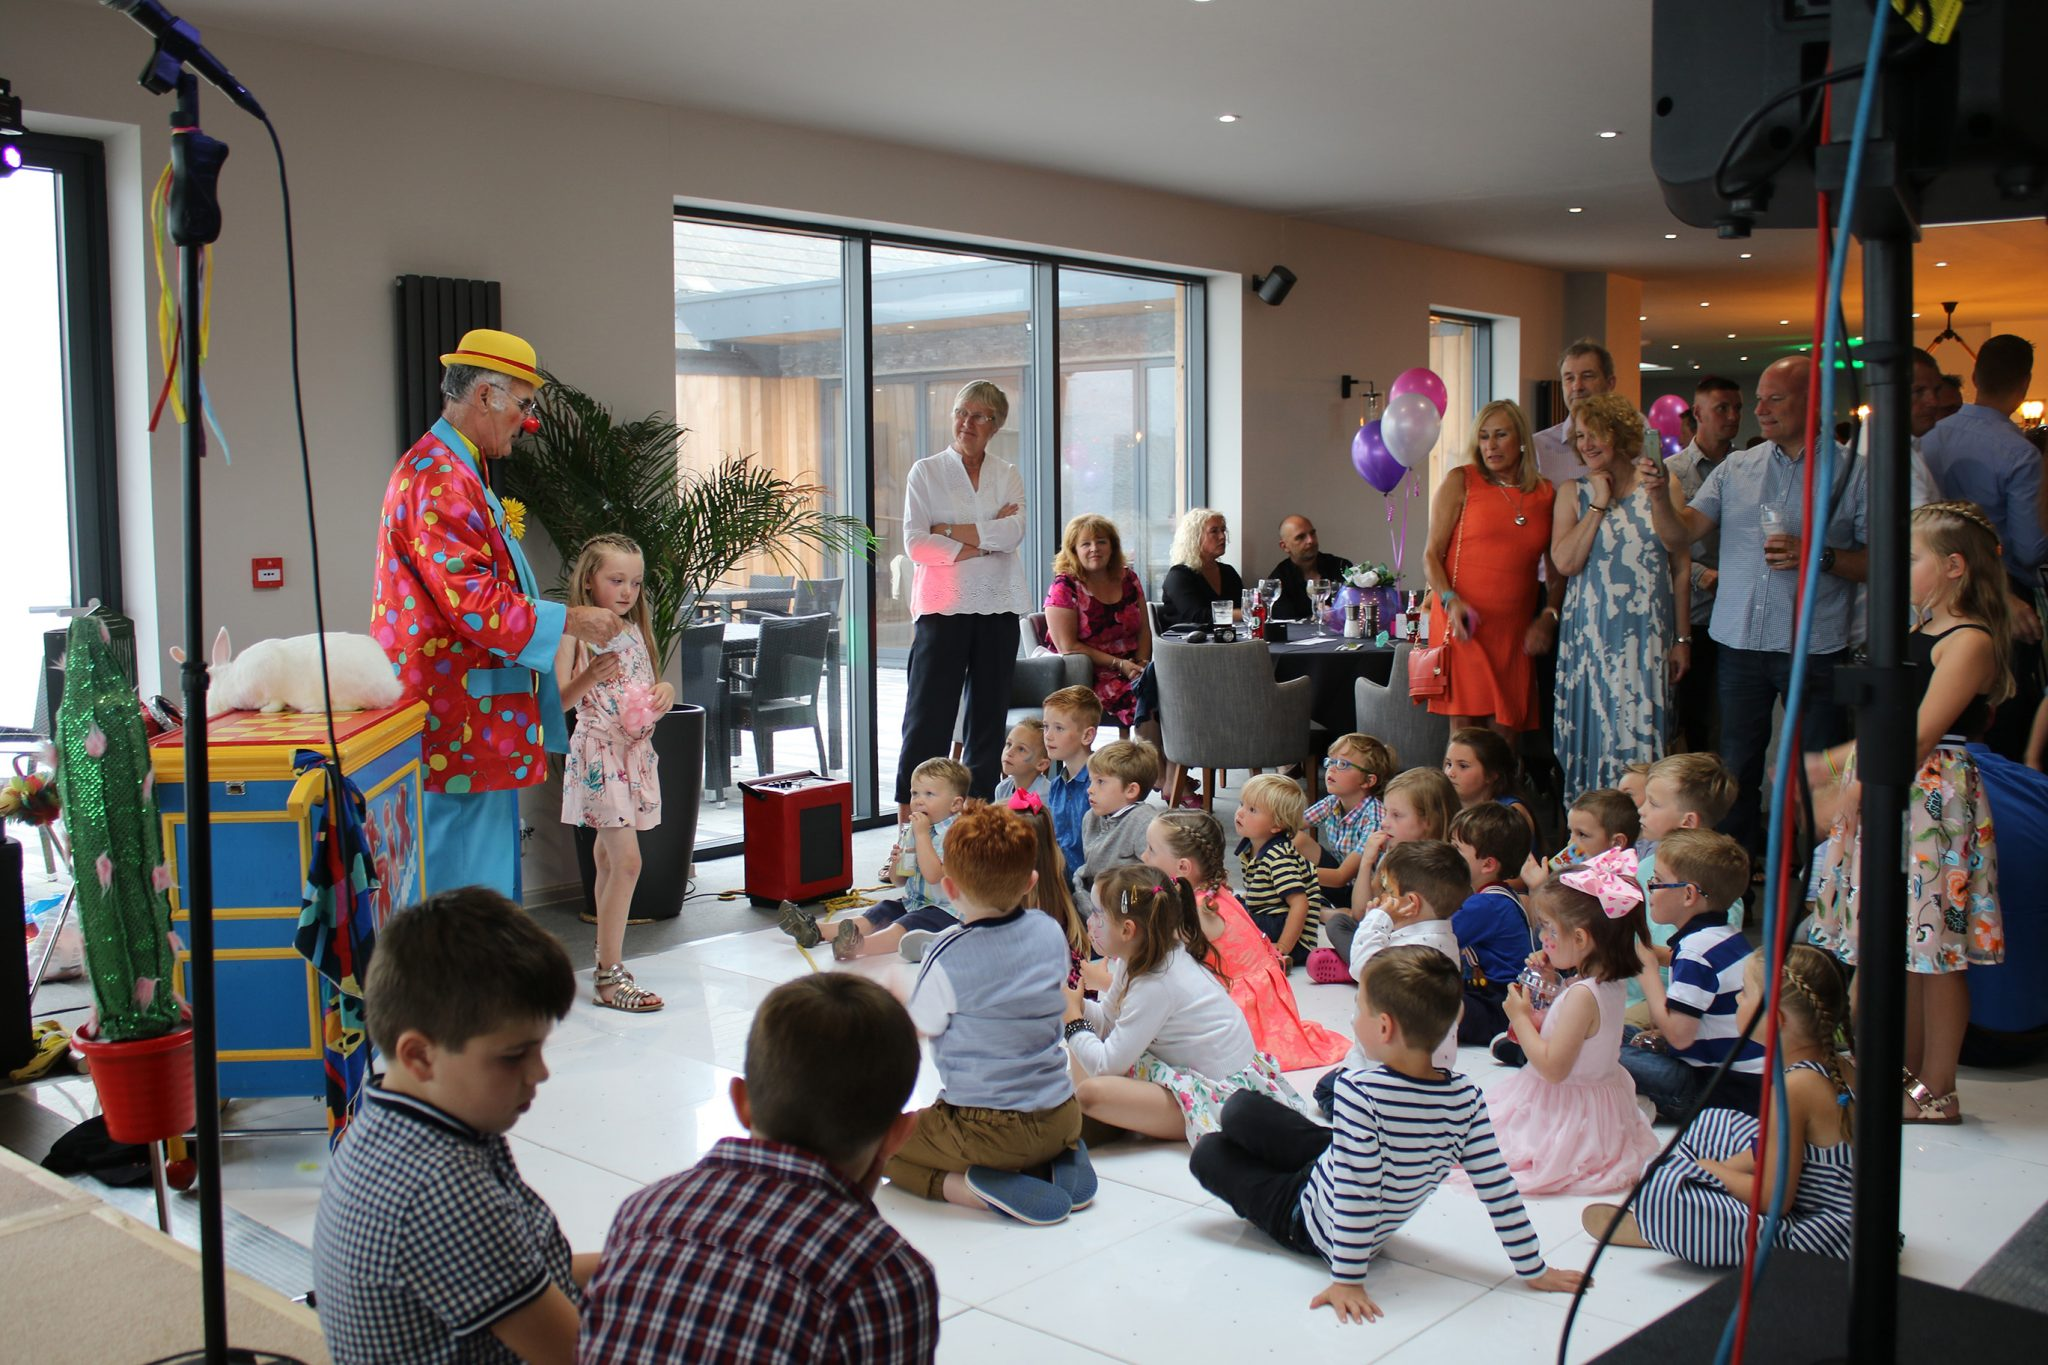 SilverBay-Luxury-Holiday-Village-Anglesey_Summer-Party_144.jpg